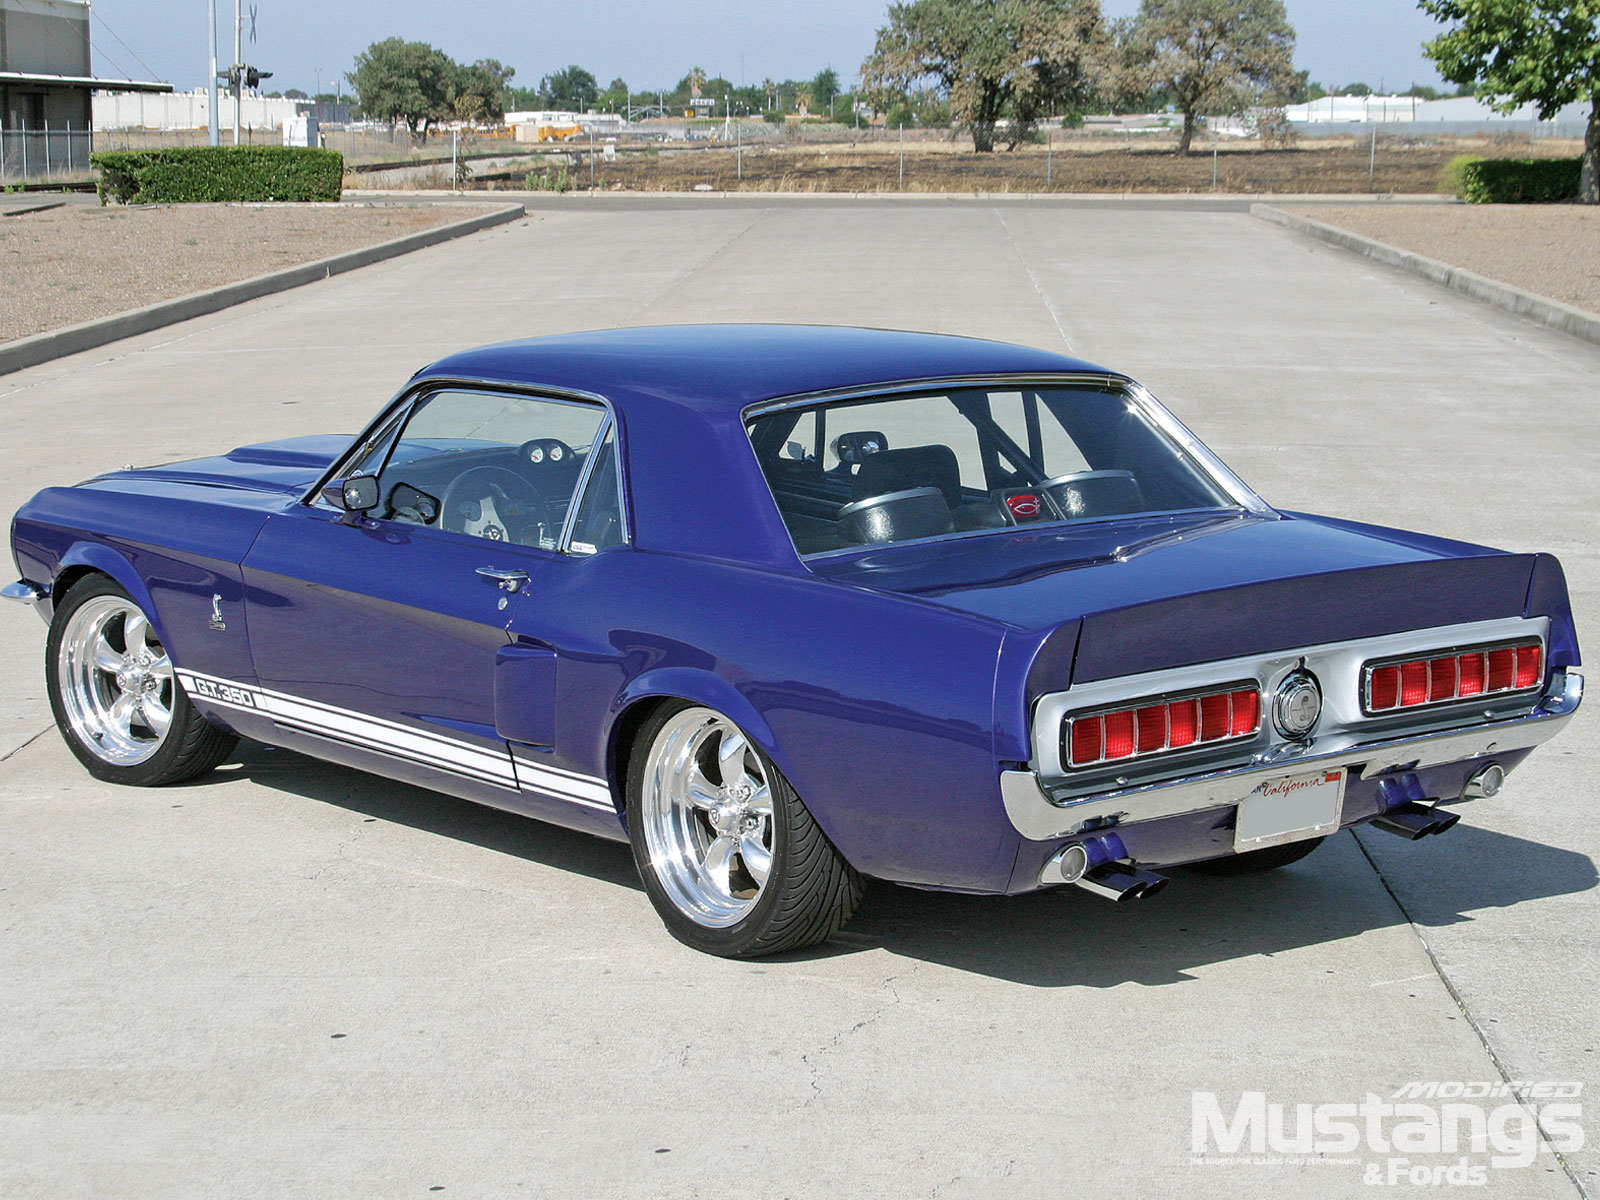 1967 Mustang Coupe Rear View